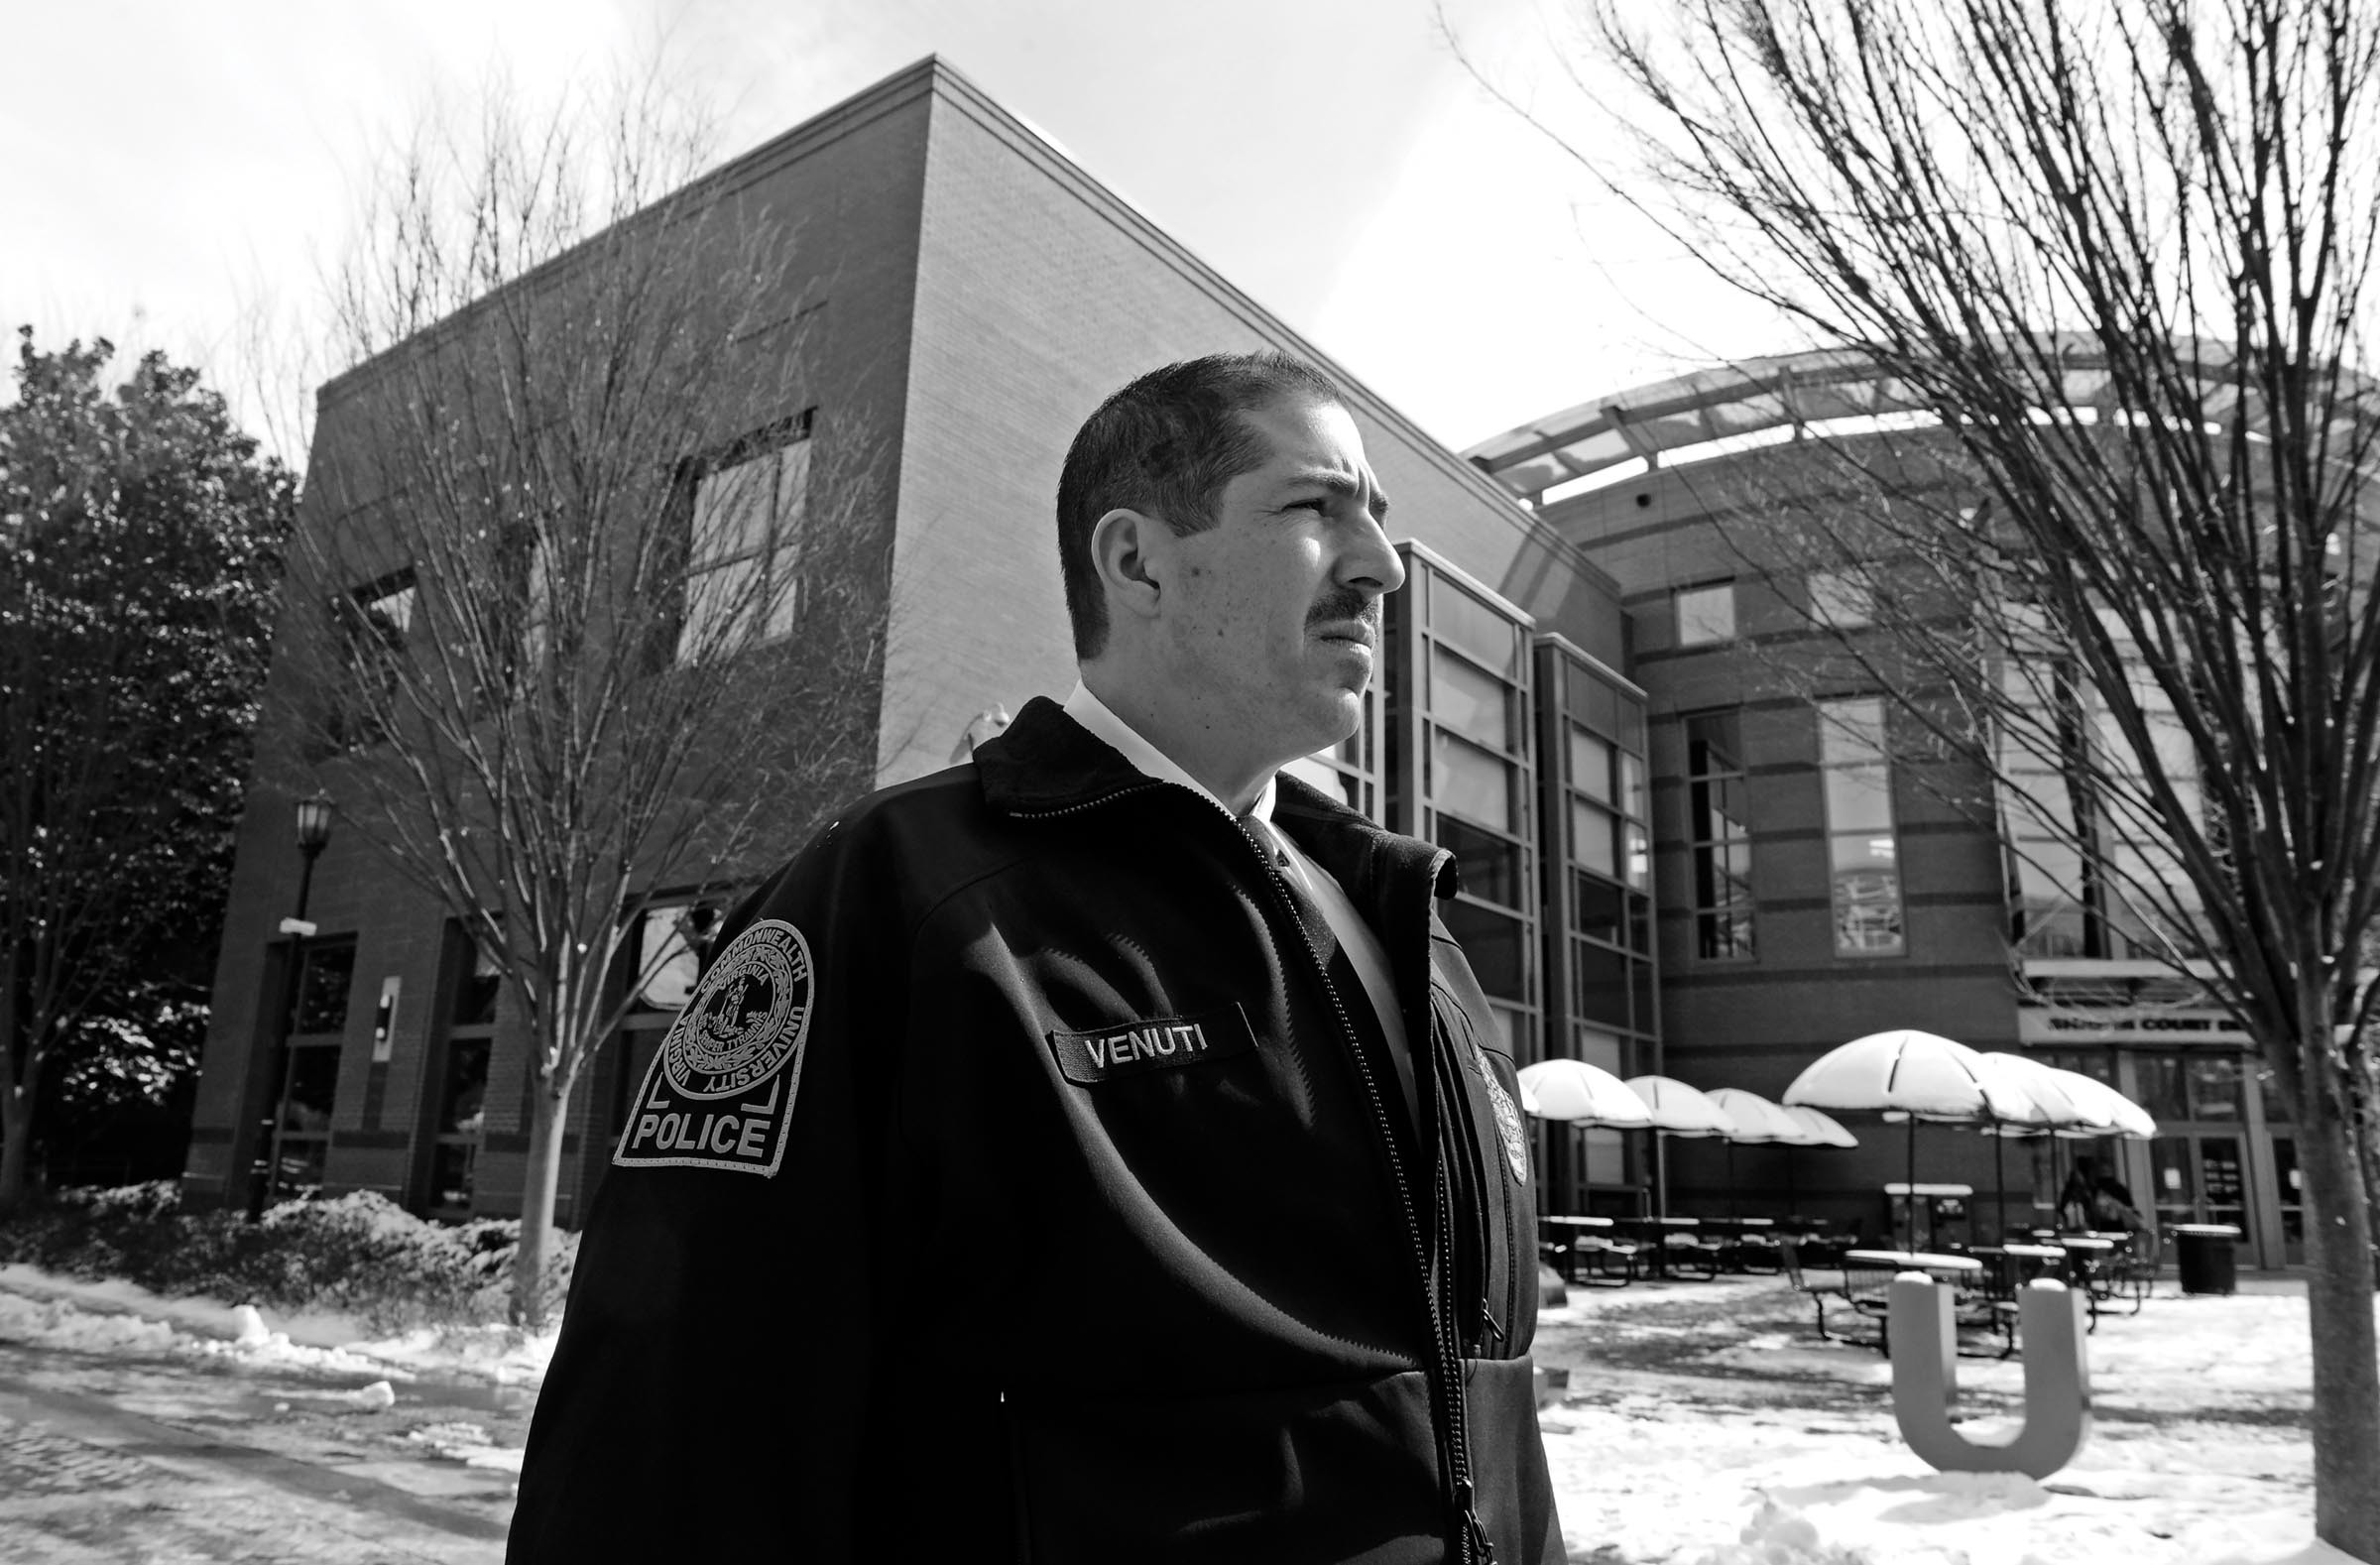 After a long career with the Richmond Police Department, Venuti became the first hire of VCU President Michael Rao in 2009. - SCOTT ELMQUIST